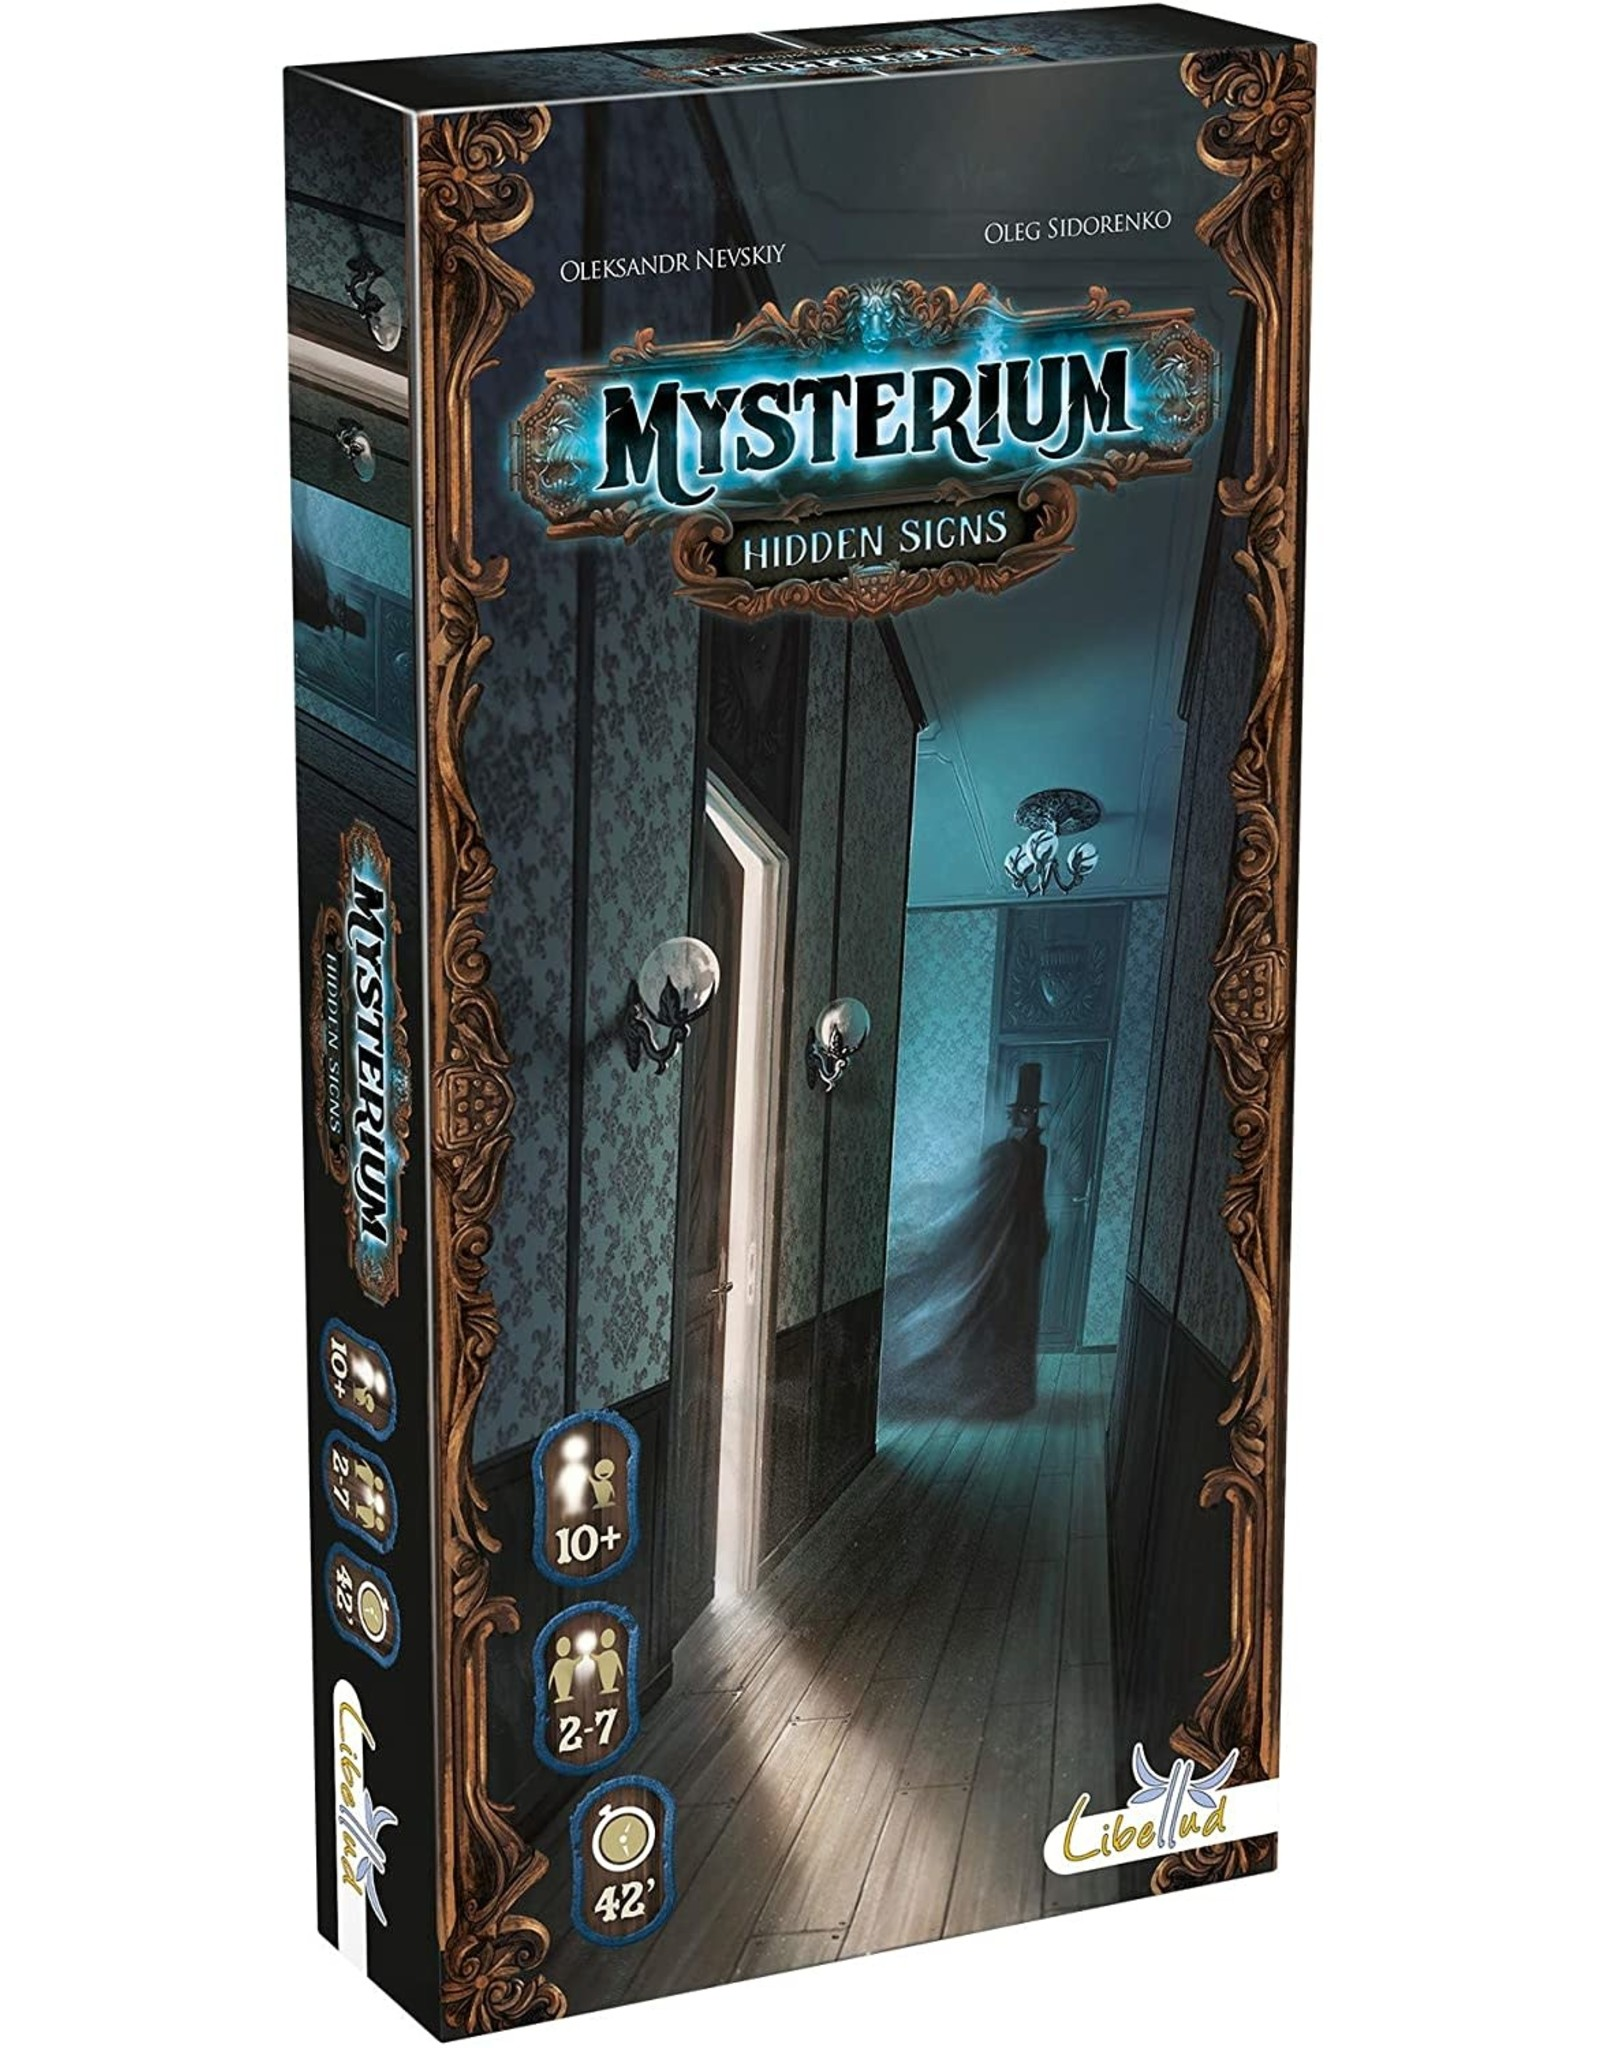 Libellud Mysterium: Hidden Signs Expansion